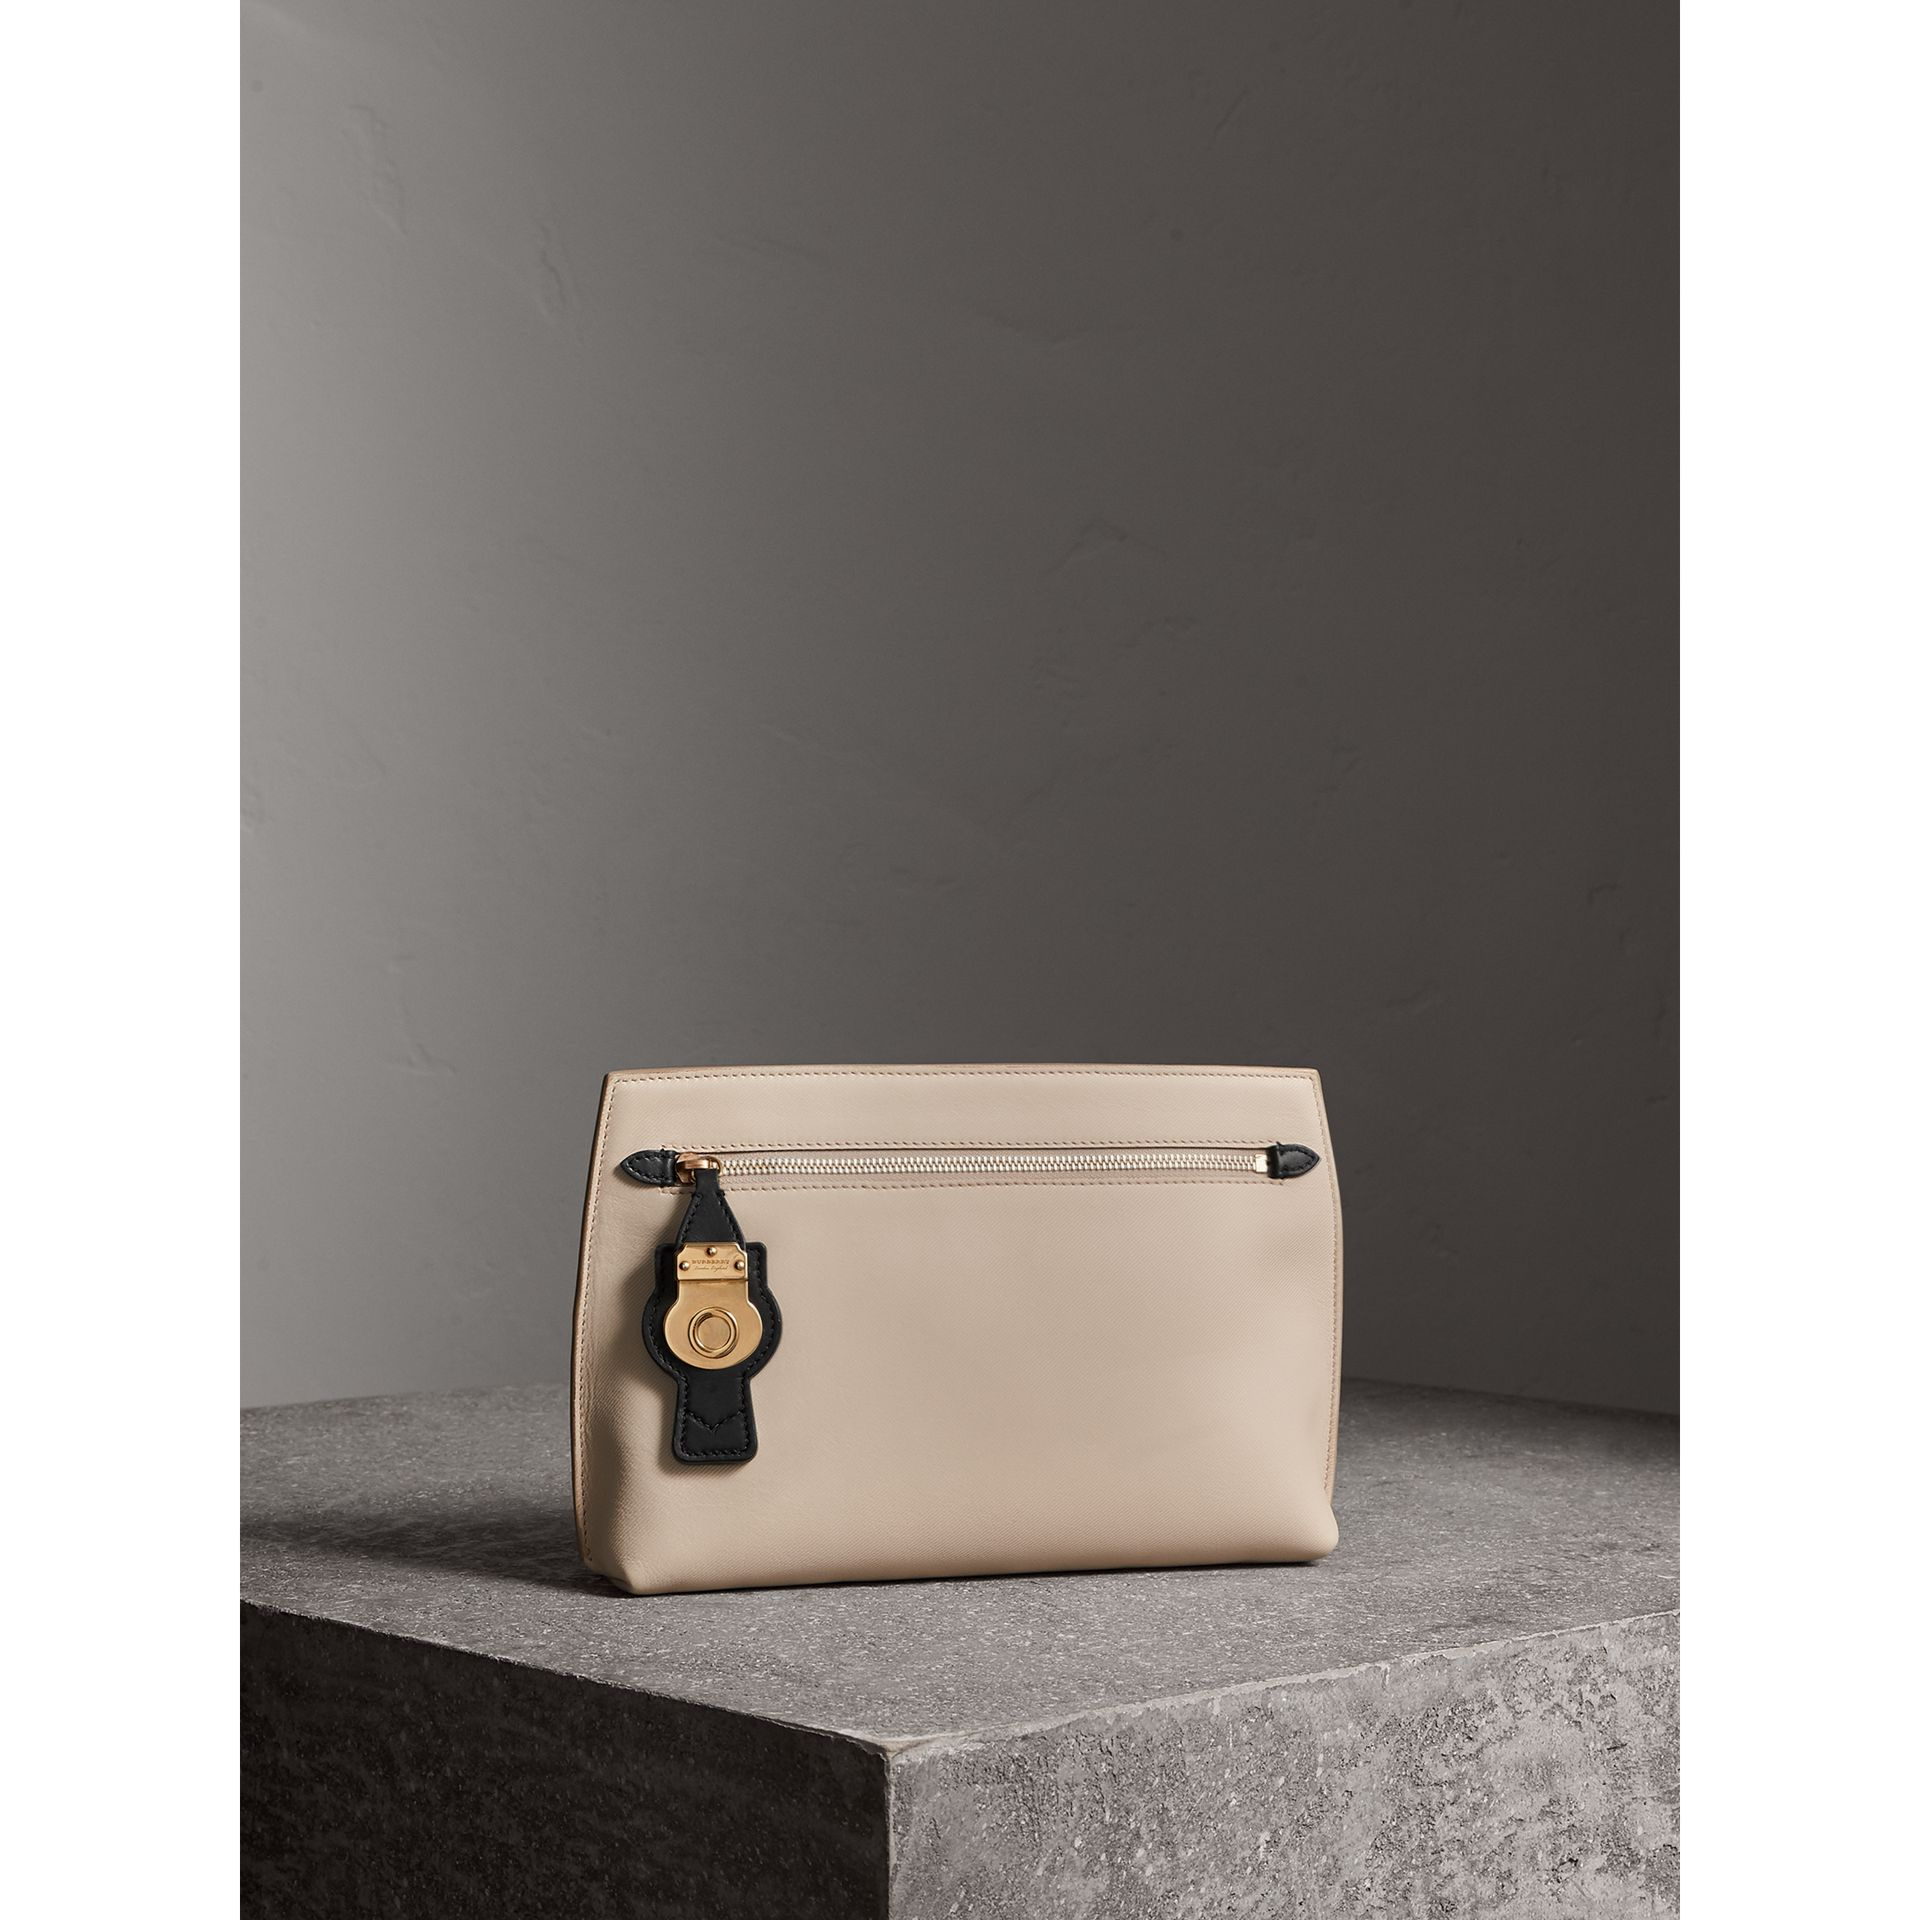 Two-tone Trench Leather Wristlet Pouch in Limestone/black - Women | Burberry United States - gallery image 5